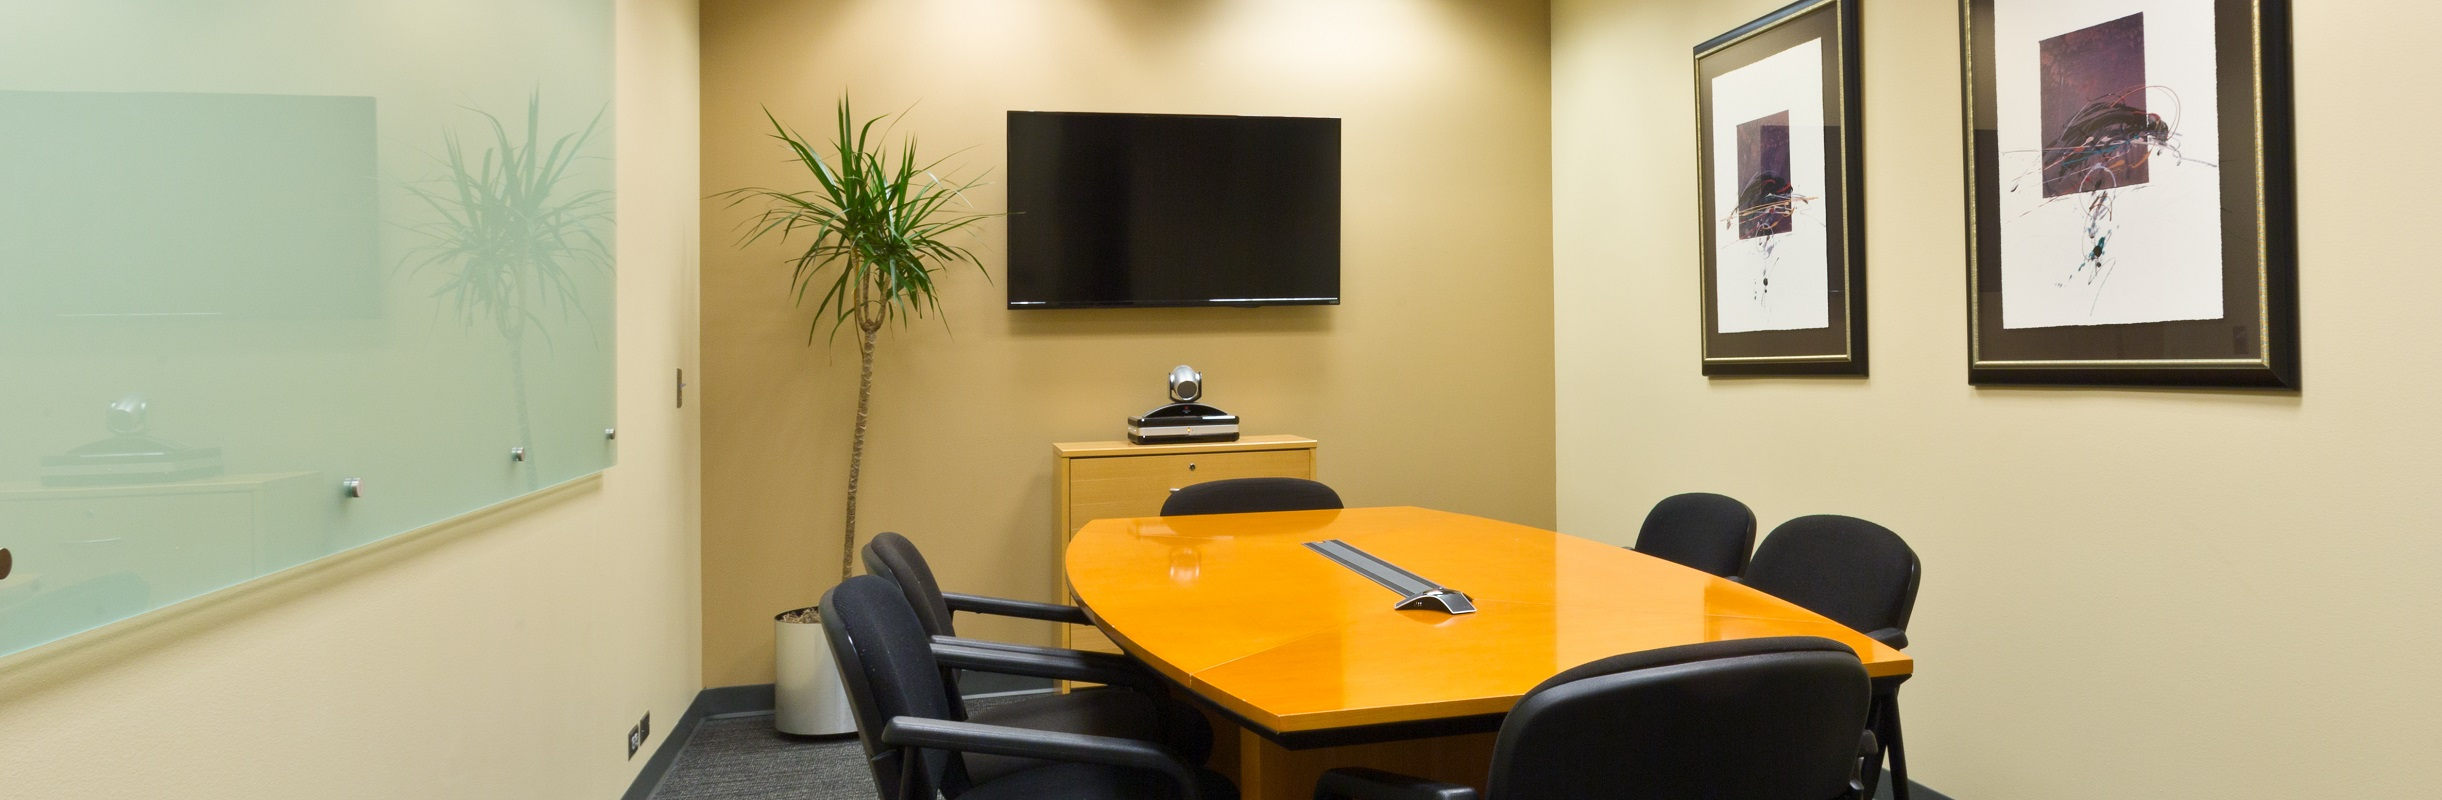 Medium Conference Room Image